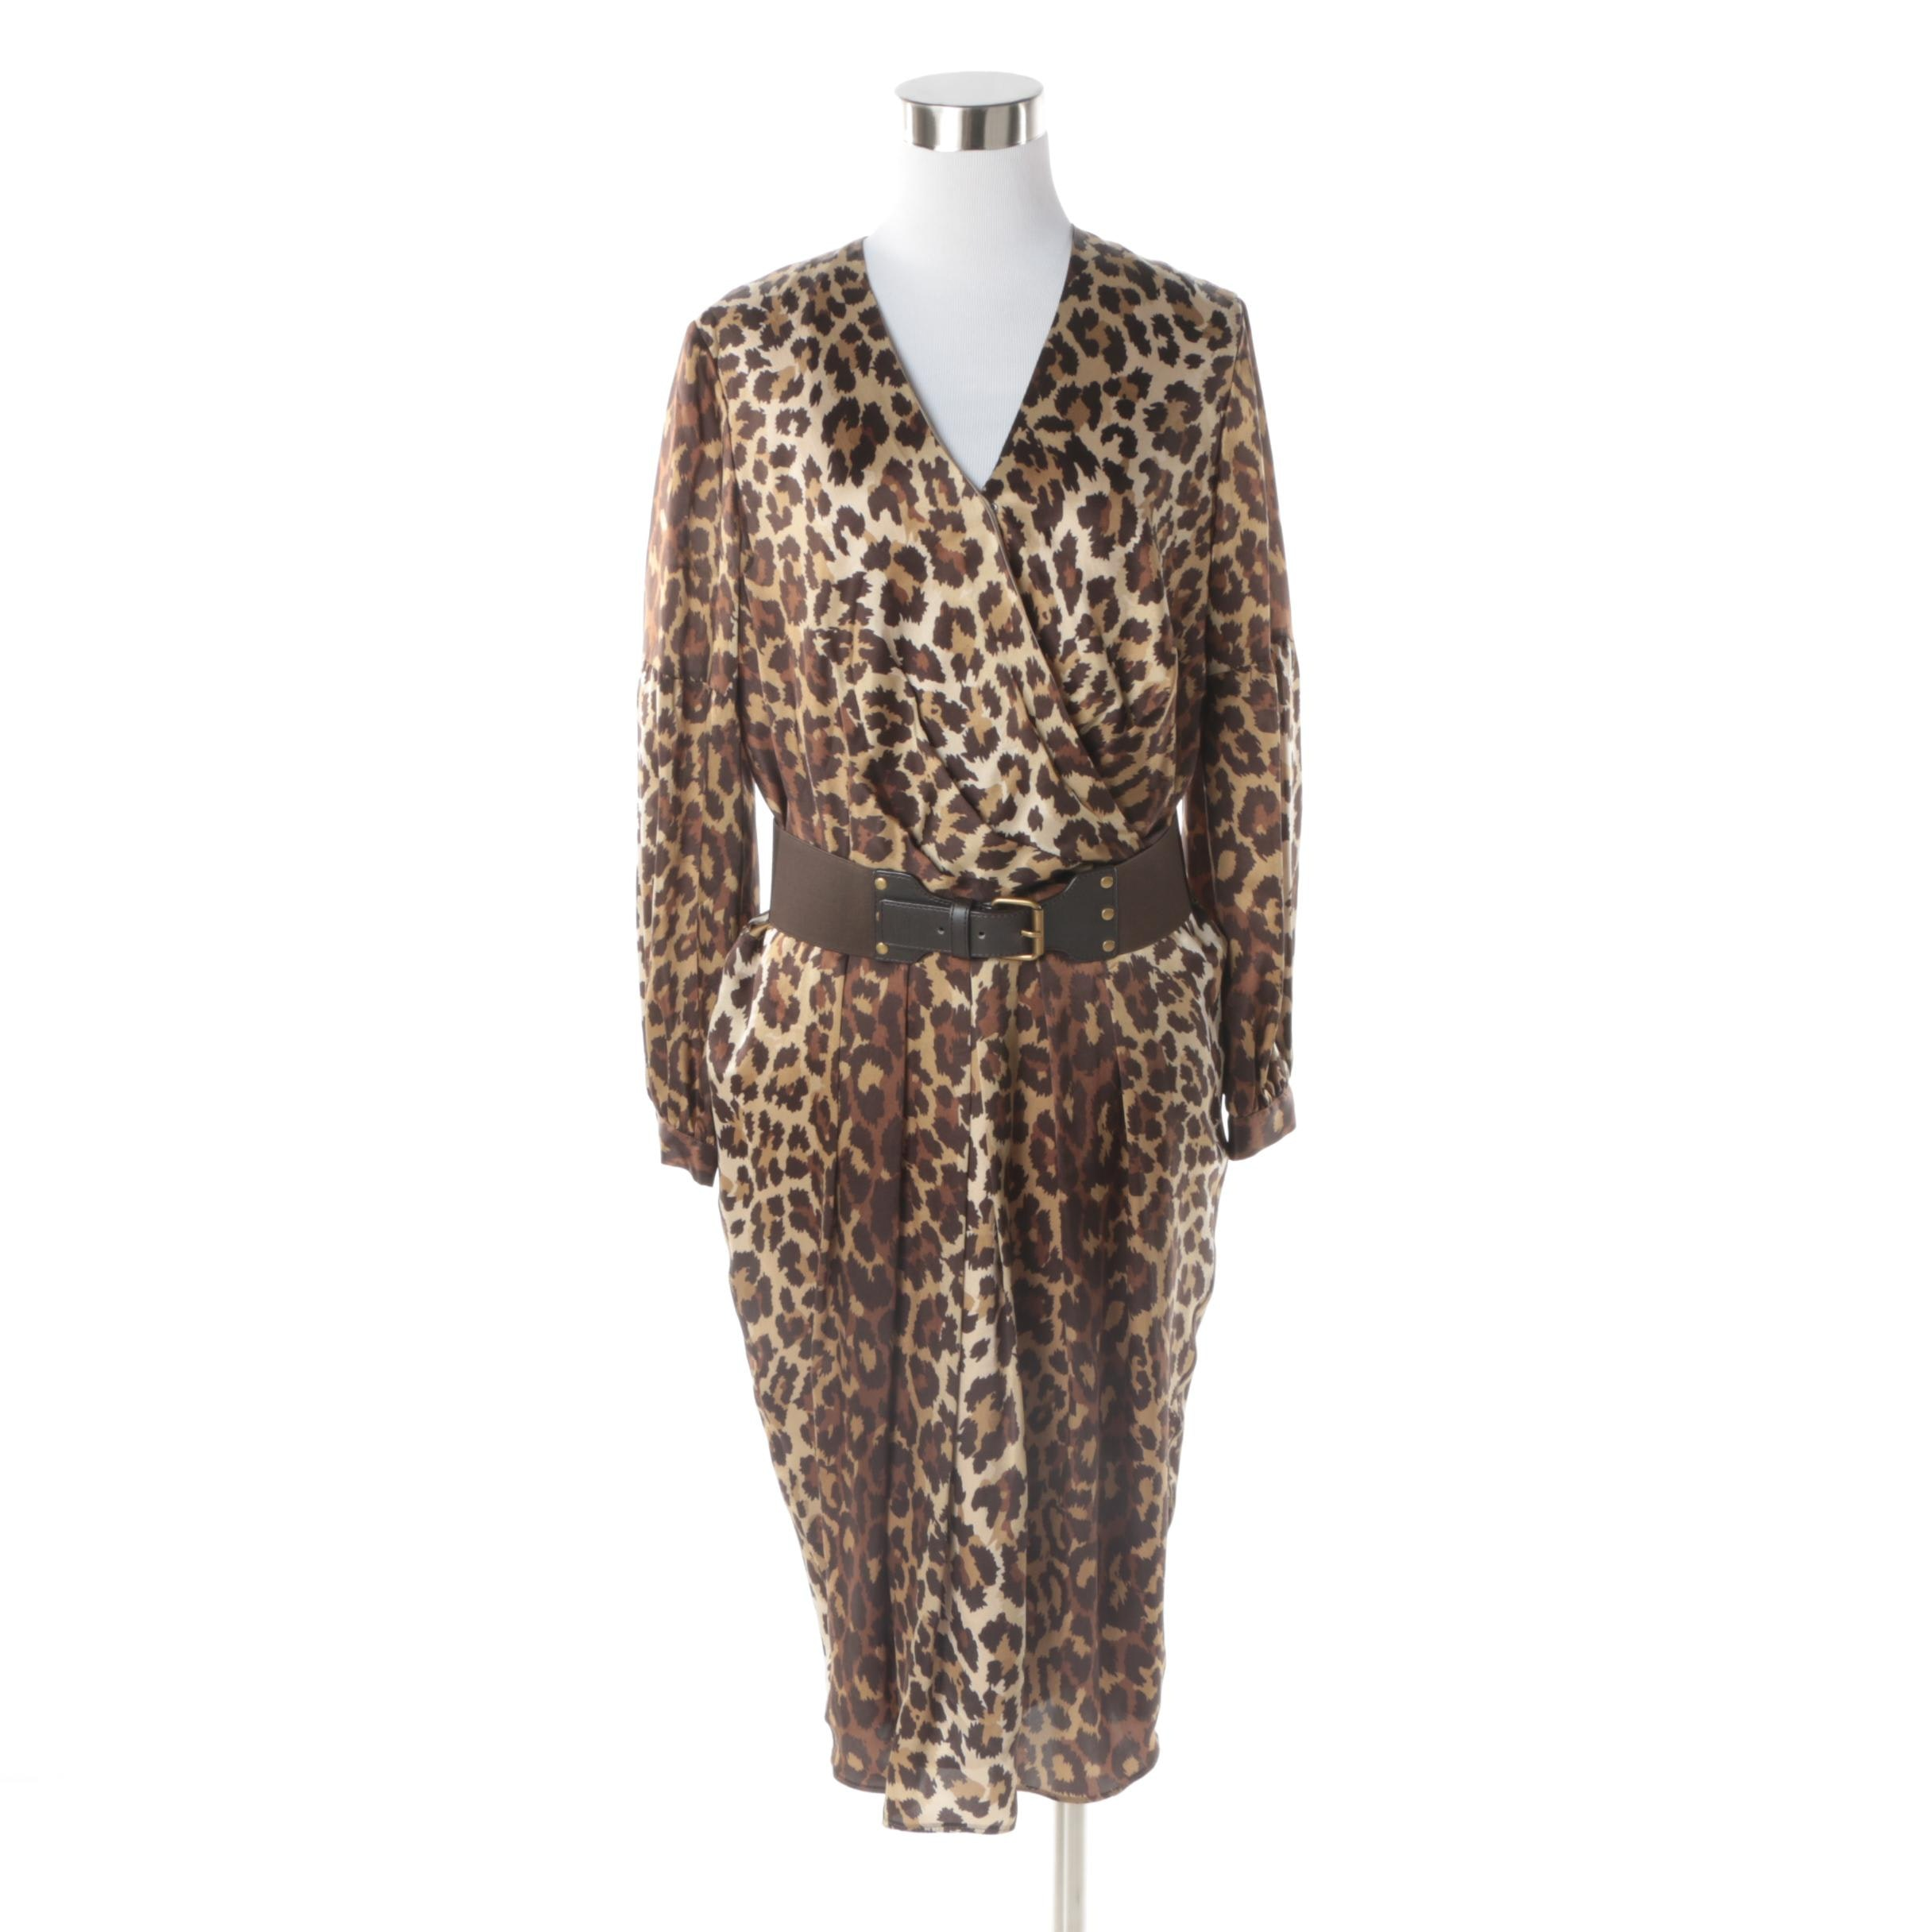 Women's Leopard Print Silk Wrap Dress with Lafayette 148 New York Belt